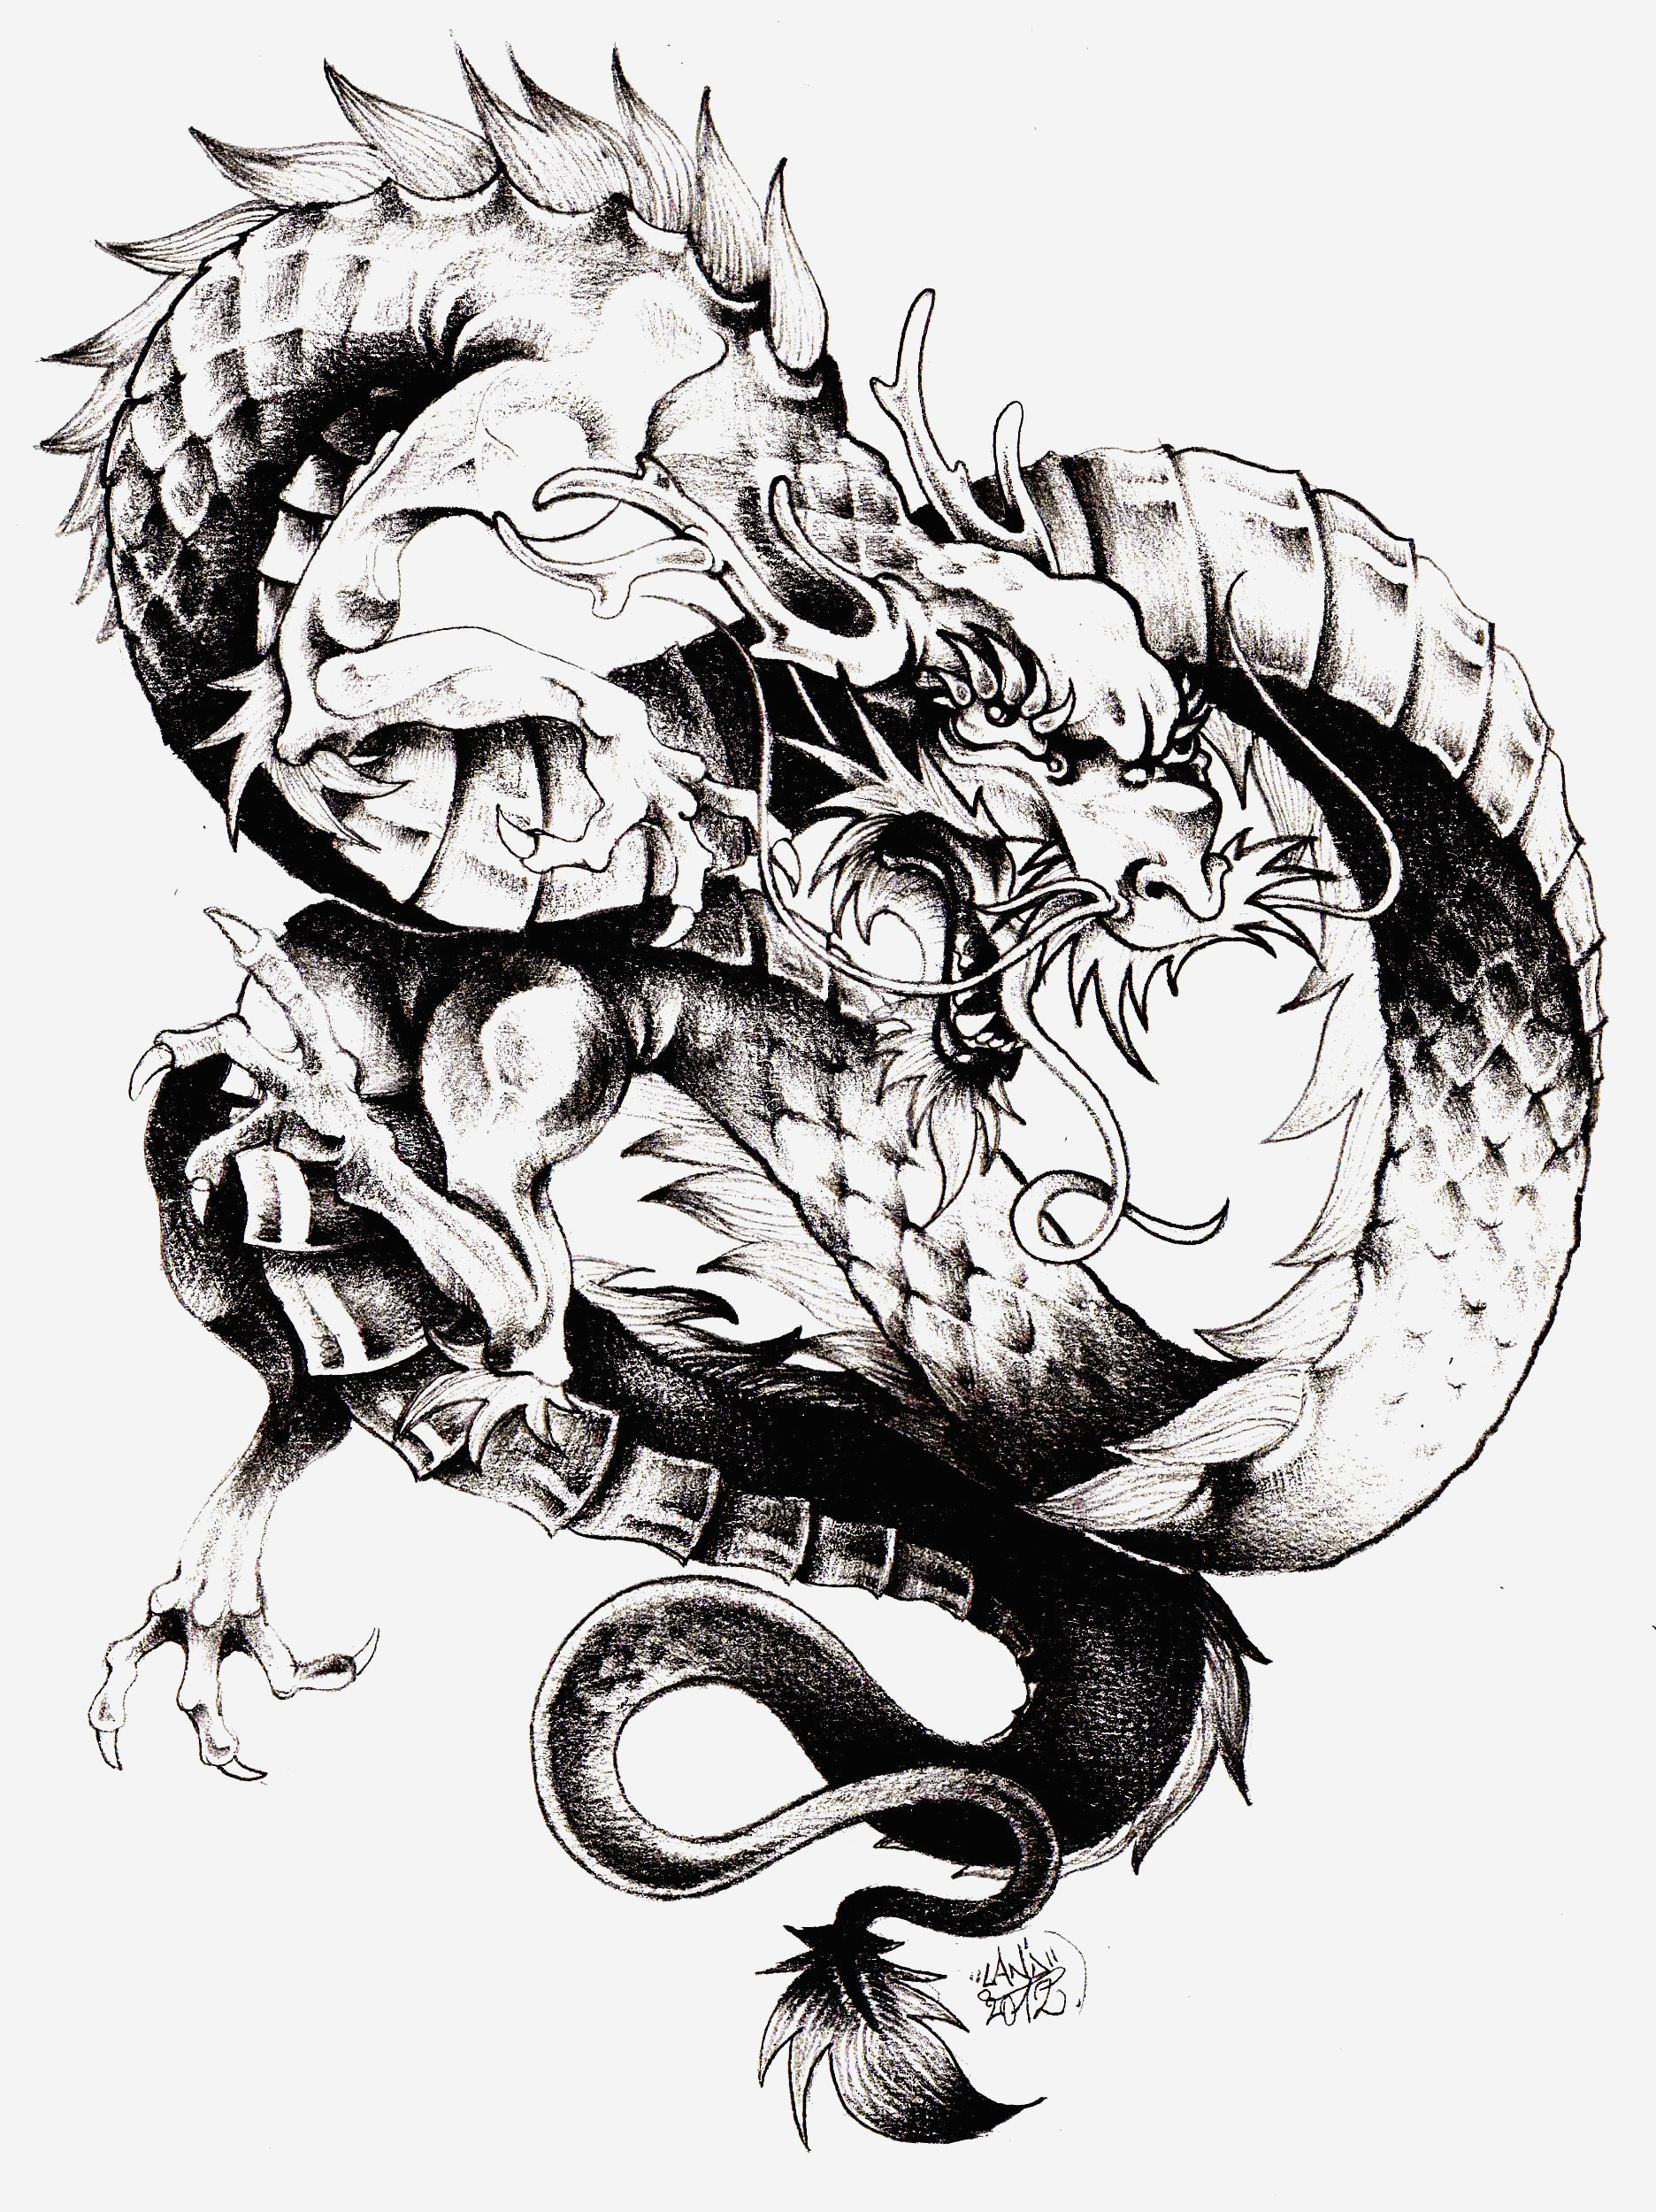 Coloriage Dragon Chinois Elegant Dragon Chine Chine asie Coloriages Difficiles Pour Adultes Of Coloriage Dragon Chinois